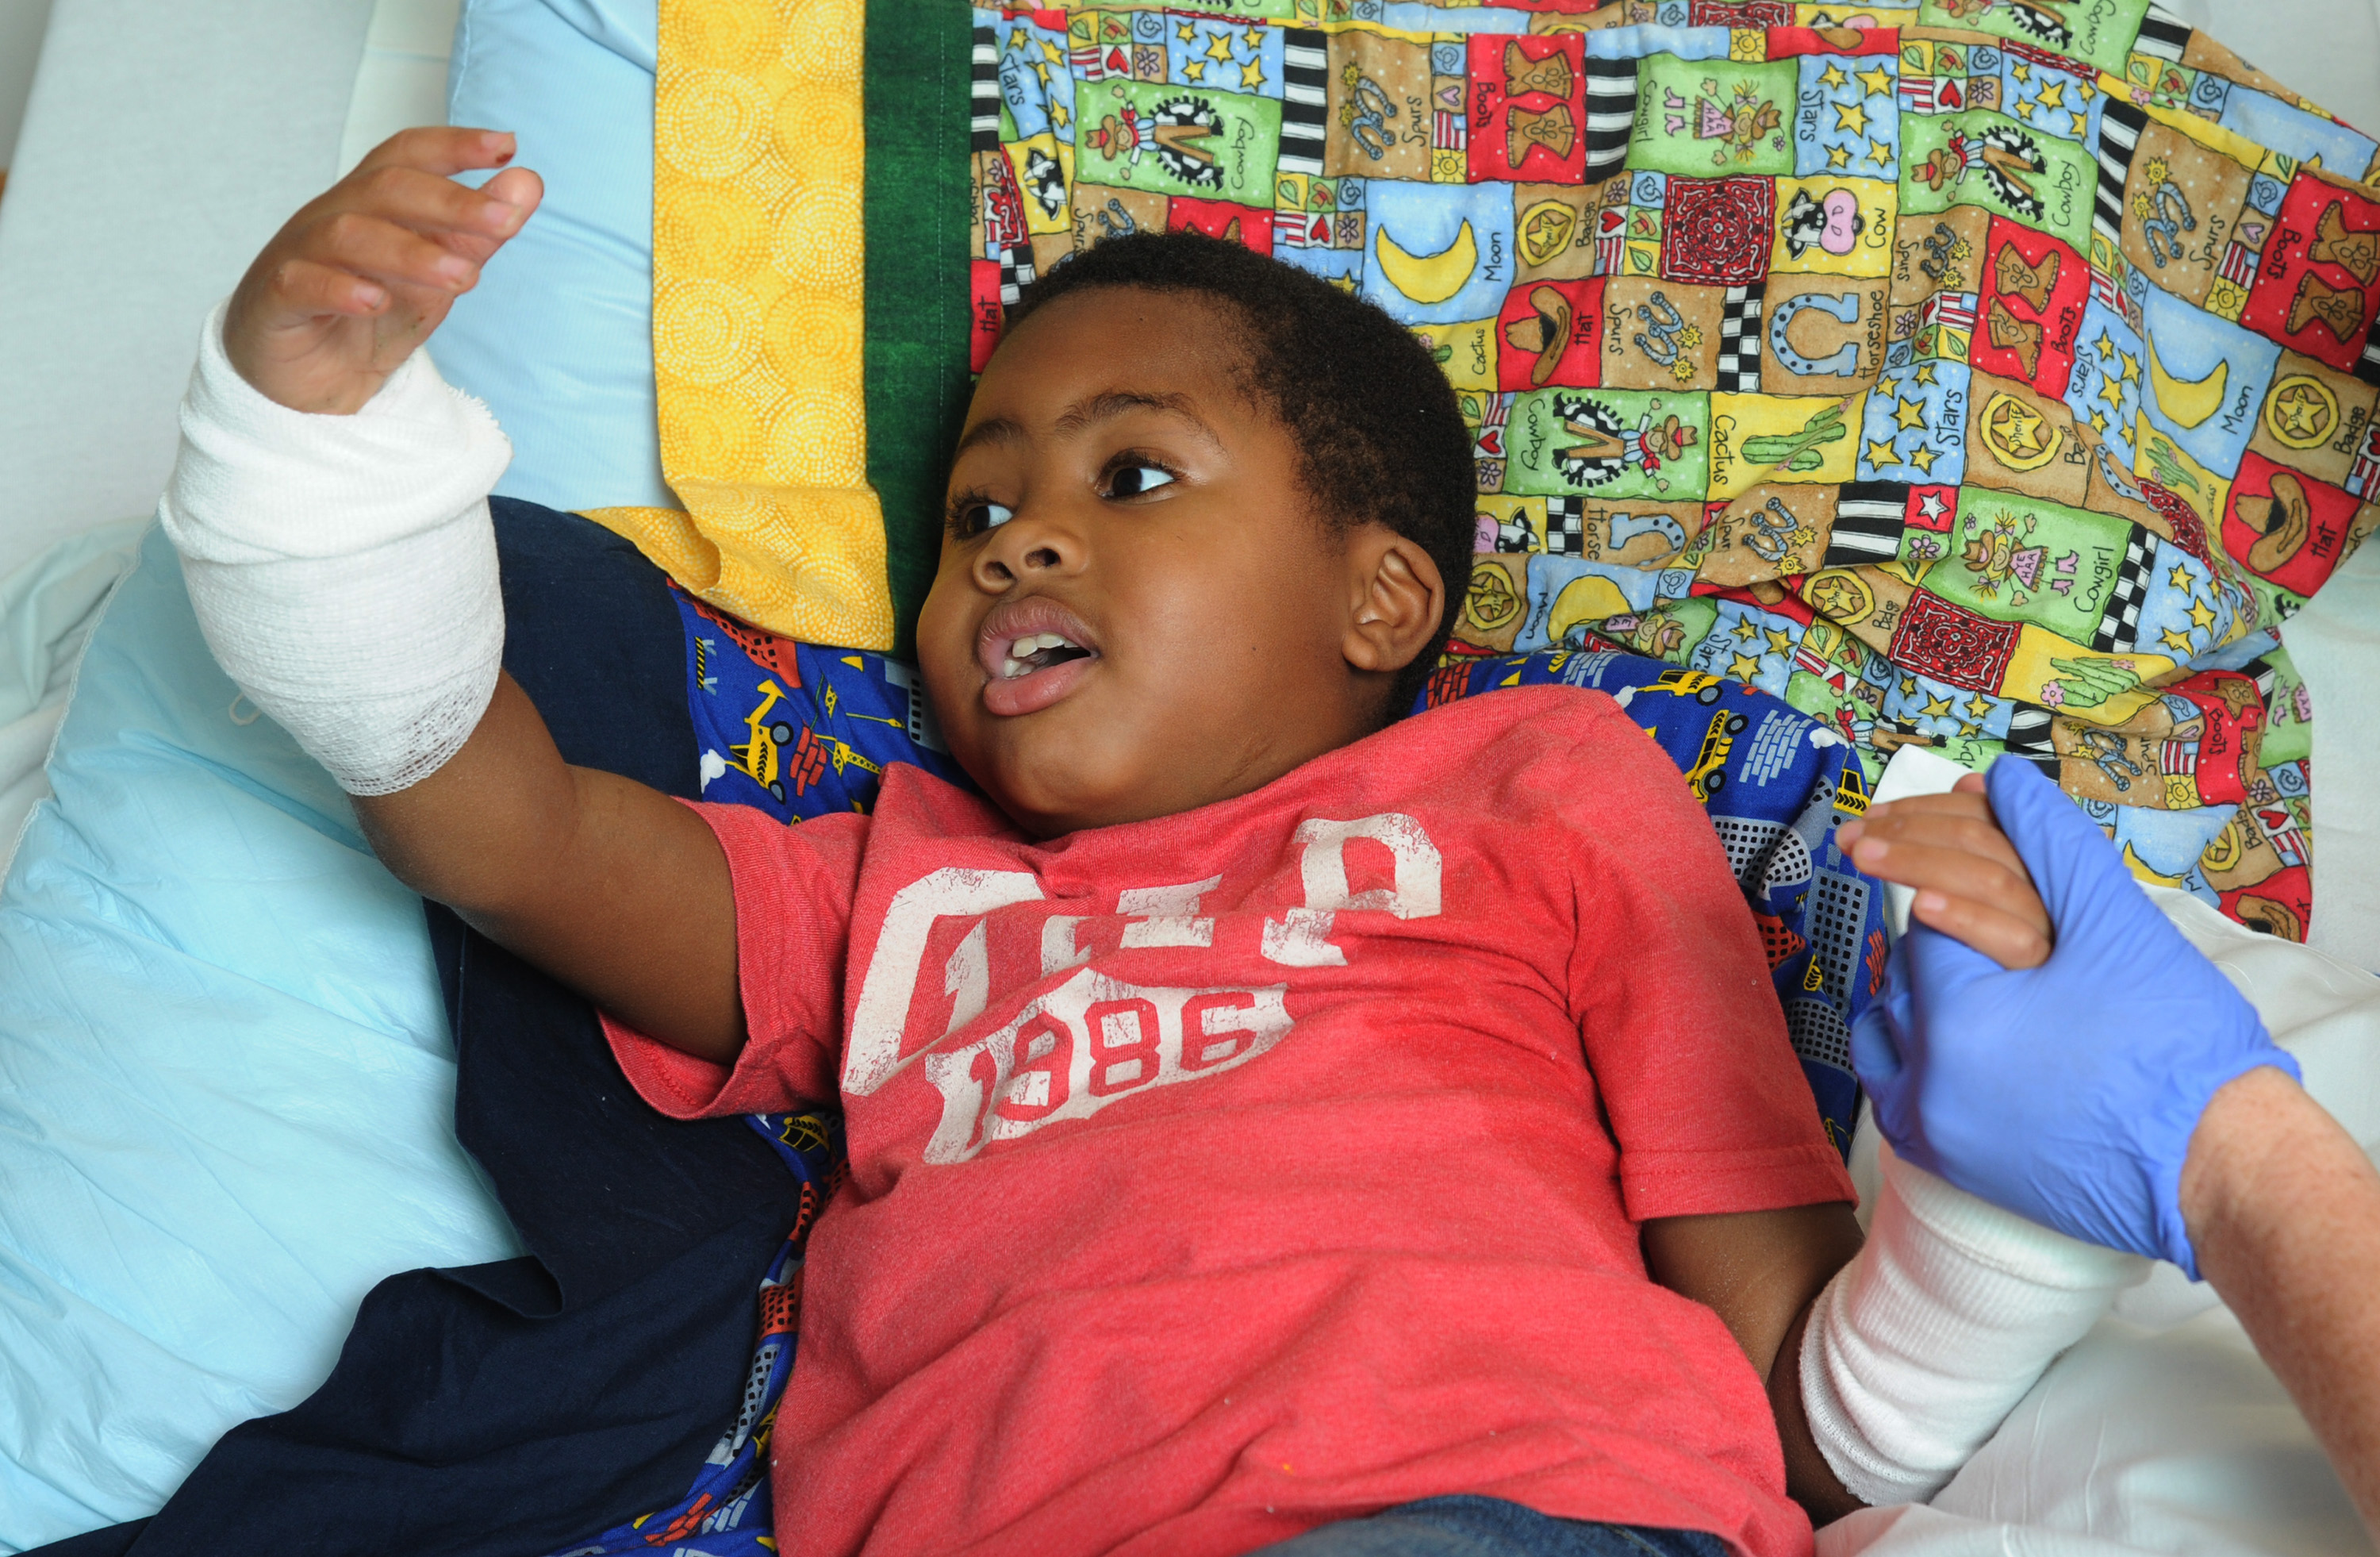 Zion Harvey, 8, of Baltimore, seems to marvel at his new right hand while in his hospital bed on July 27, 2015. Zion lost his hands and feet to a bacterial disease when he was 2, but had a double hand transplant at Children's Hospital of Philadelphia in early July 2015, the first pediatric double hand transplant. (Clem Murray/Philadelphia Inquirer/TNS via Getty Images)